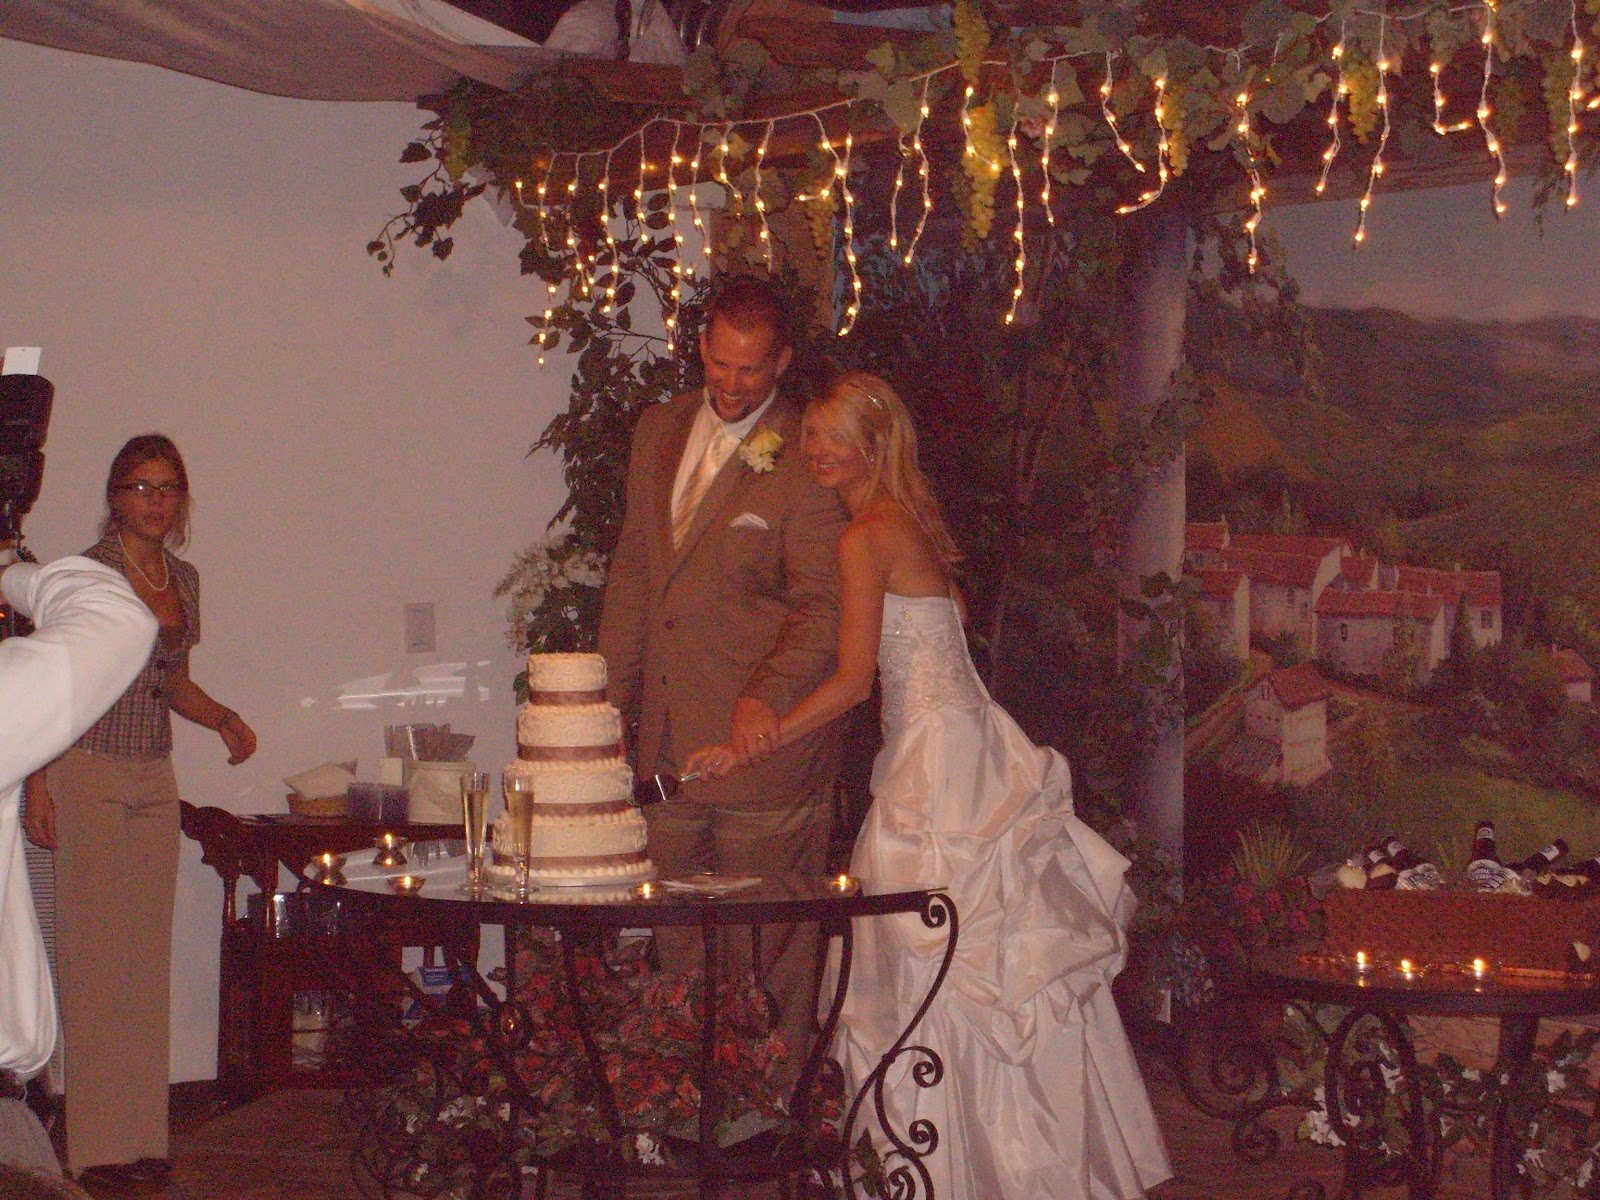 Beths Wedding - S7300176.JPG